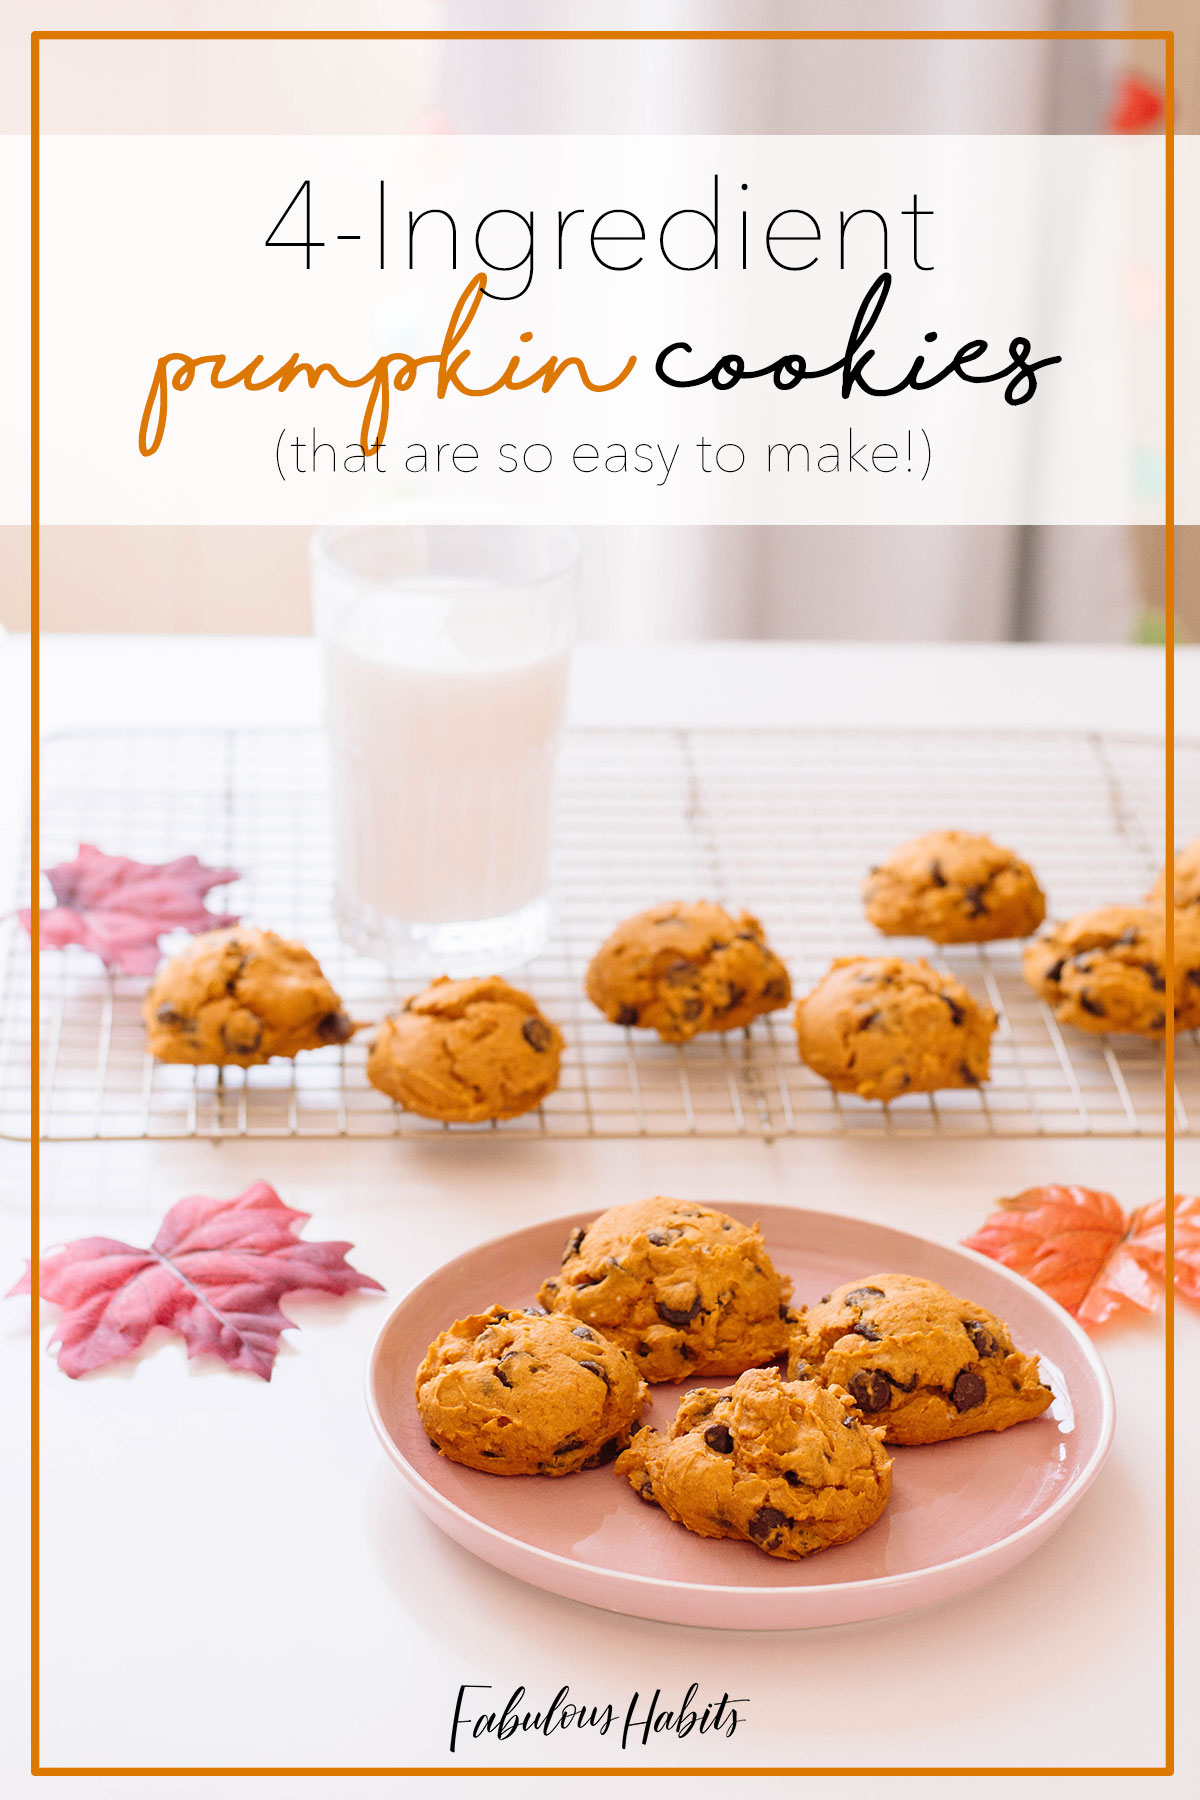 I can't get over how easy these pumpkin cookies are to make! Just 4 simple ingredients and 25 minutes of your time then, BAM! You've got pumpkin cookies that the entire family will surely love! #pumpkincookies